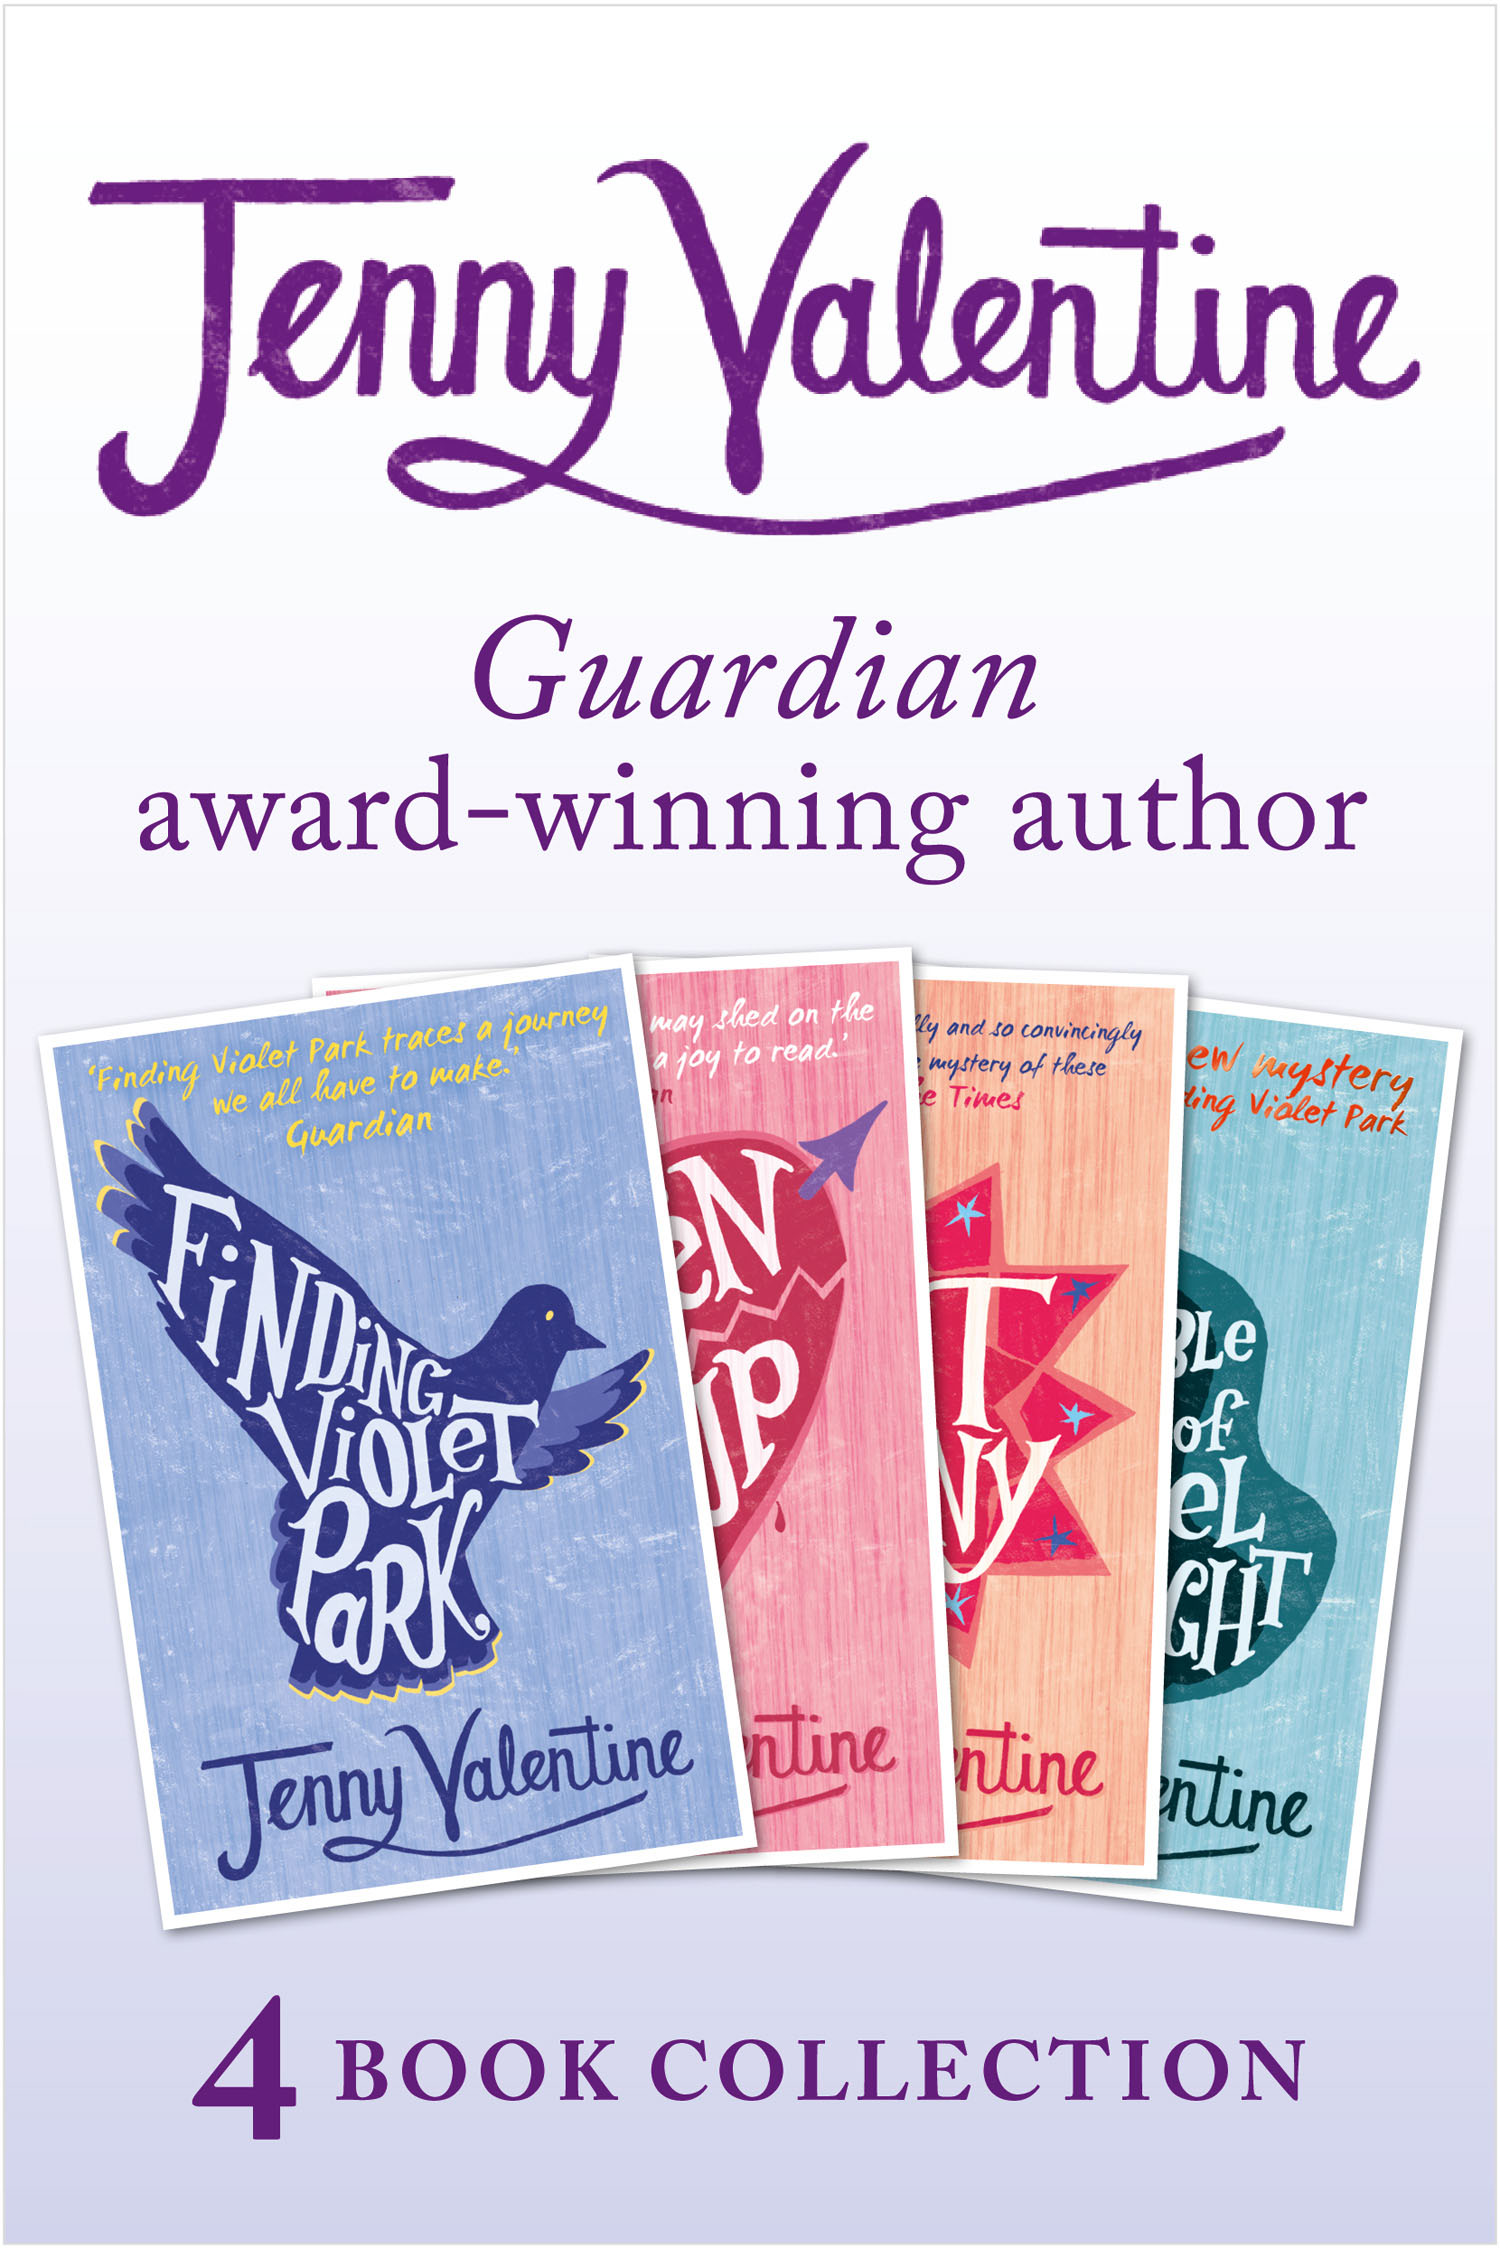 Jenny Valentine - 4 Book Award-winning Collection (Finding Violet Park, Broken Soup, The Ant Colony, The Double Life of Cassiel Roadnight)